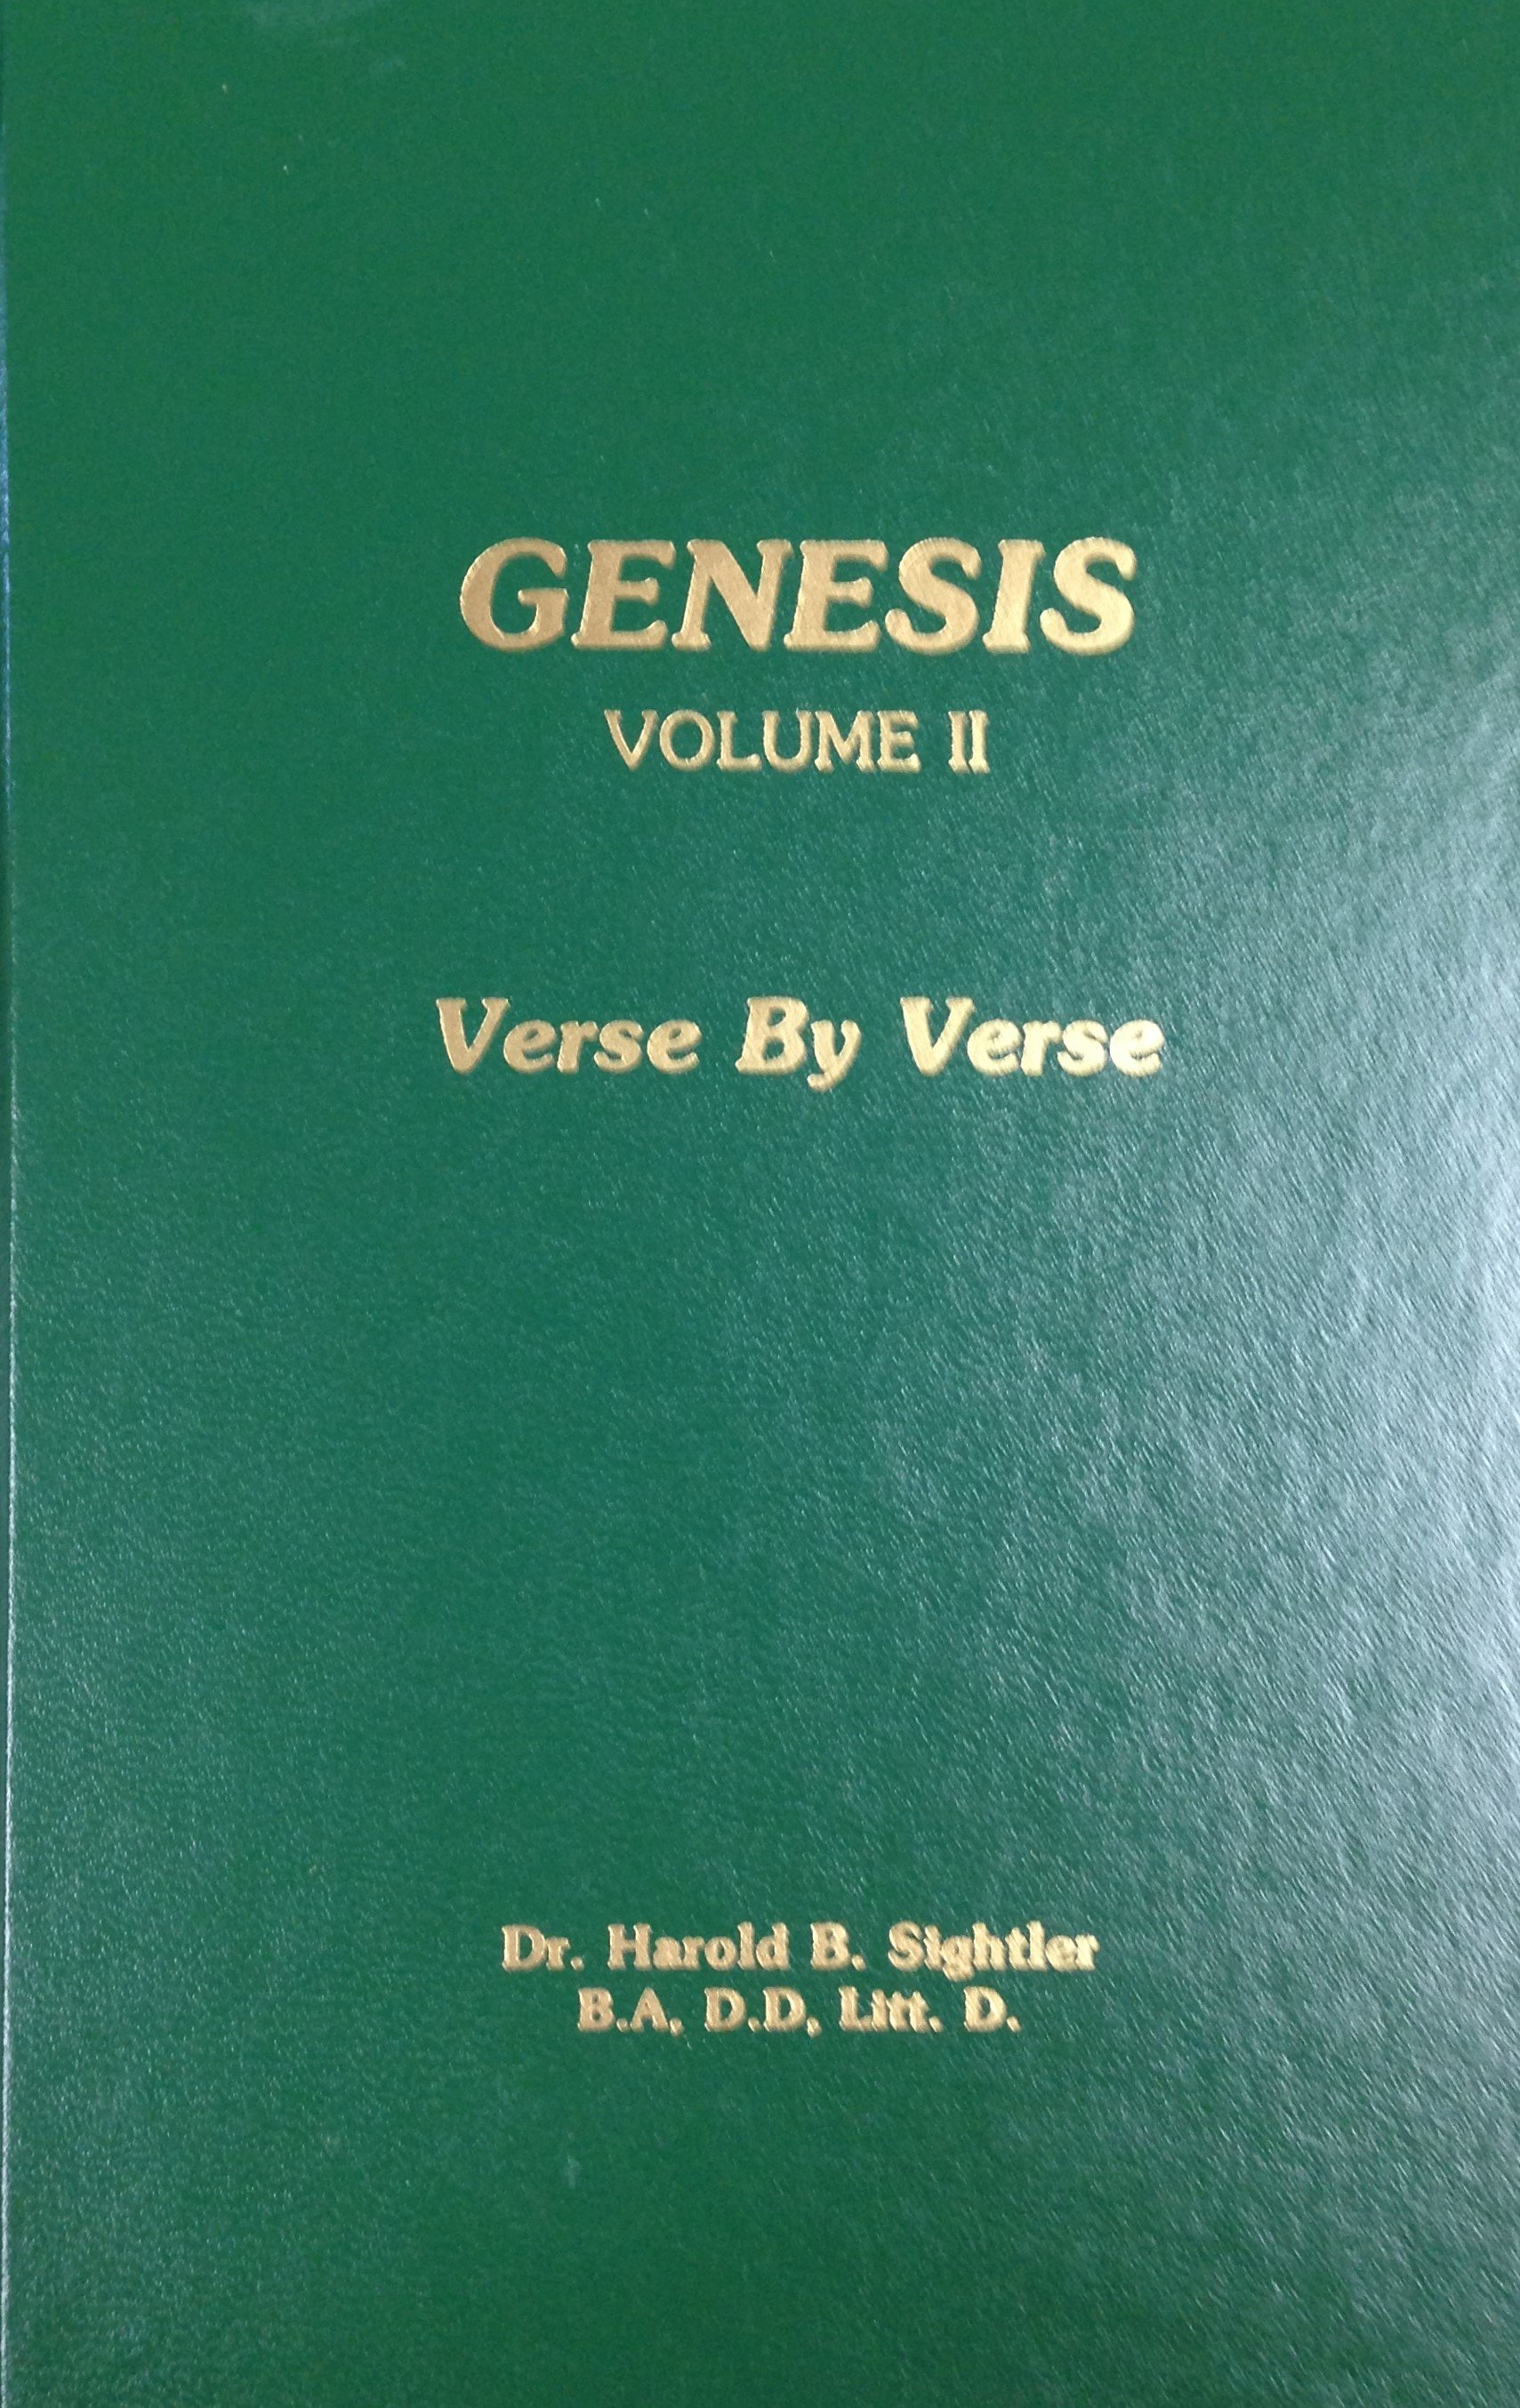 Genesis: Volume II by Dr. Harold B. Sightler 00050